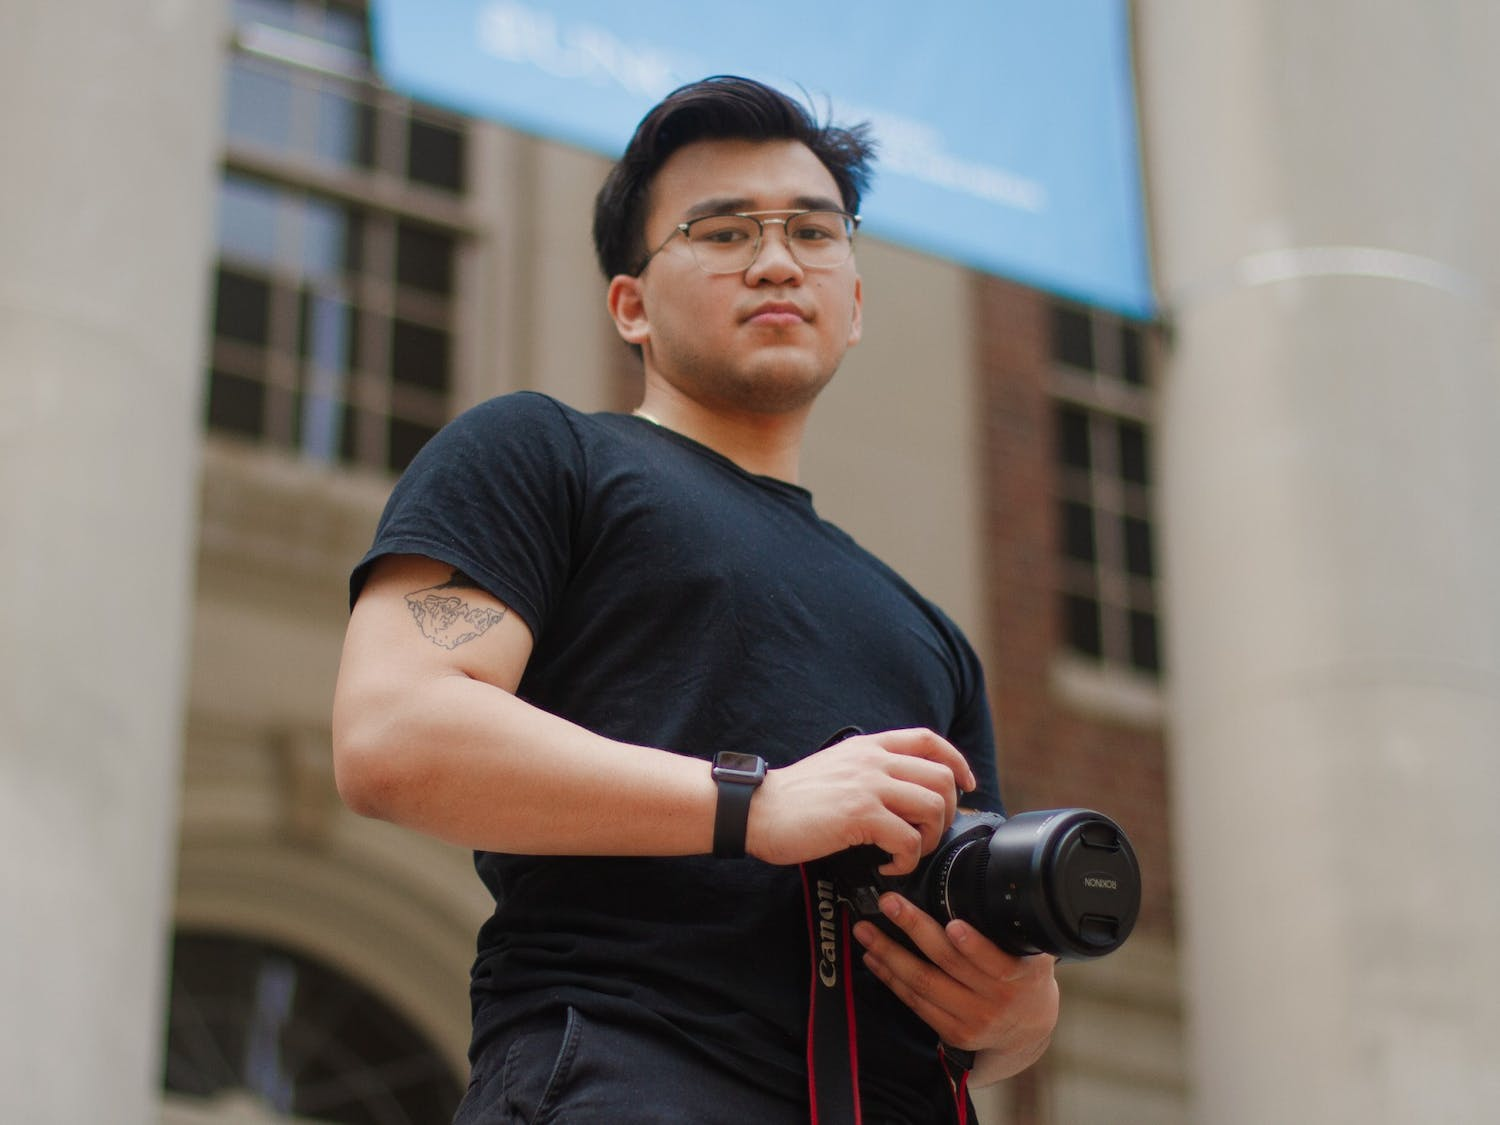 """Nash Consing, a senior studying visual journalism and communications, poses for a portrait in front of Carroll Hall on Sunday, Apr. 11, 2021. """"We experience the trauma [of being Asian-American] every day, """" says Consing. """"So why not capitalize on the joy too?"""""""